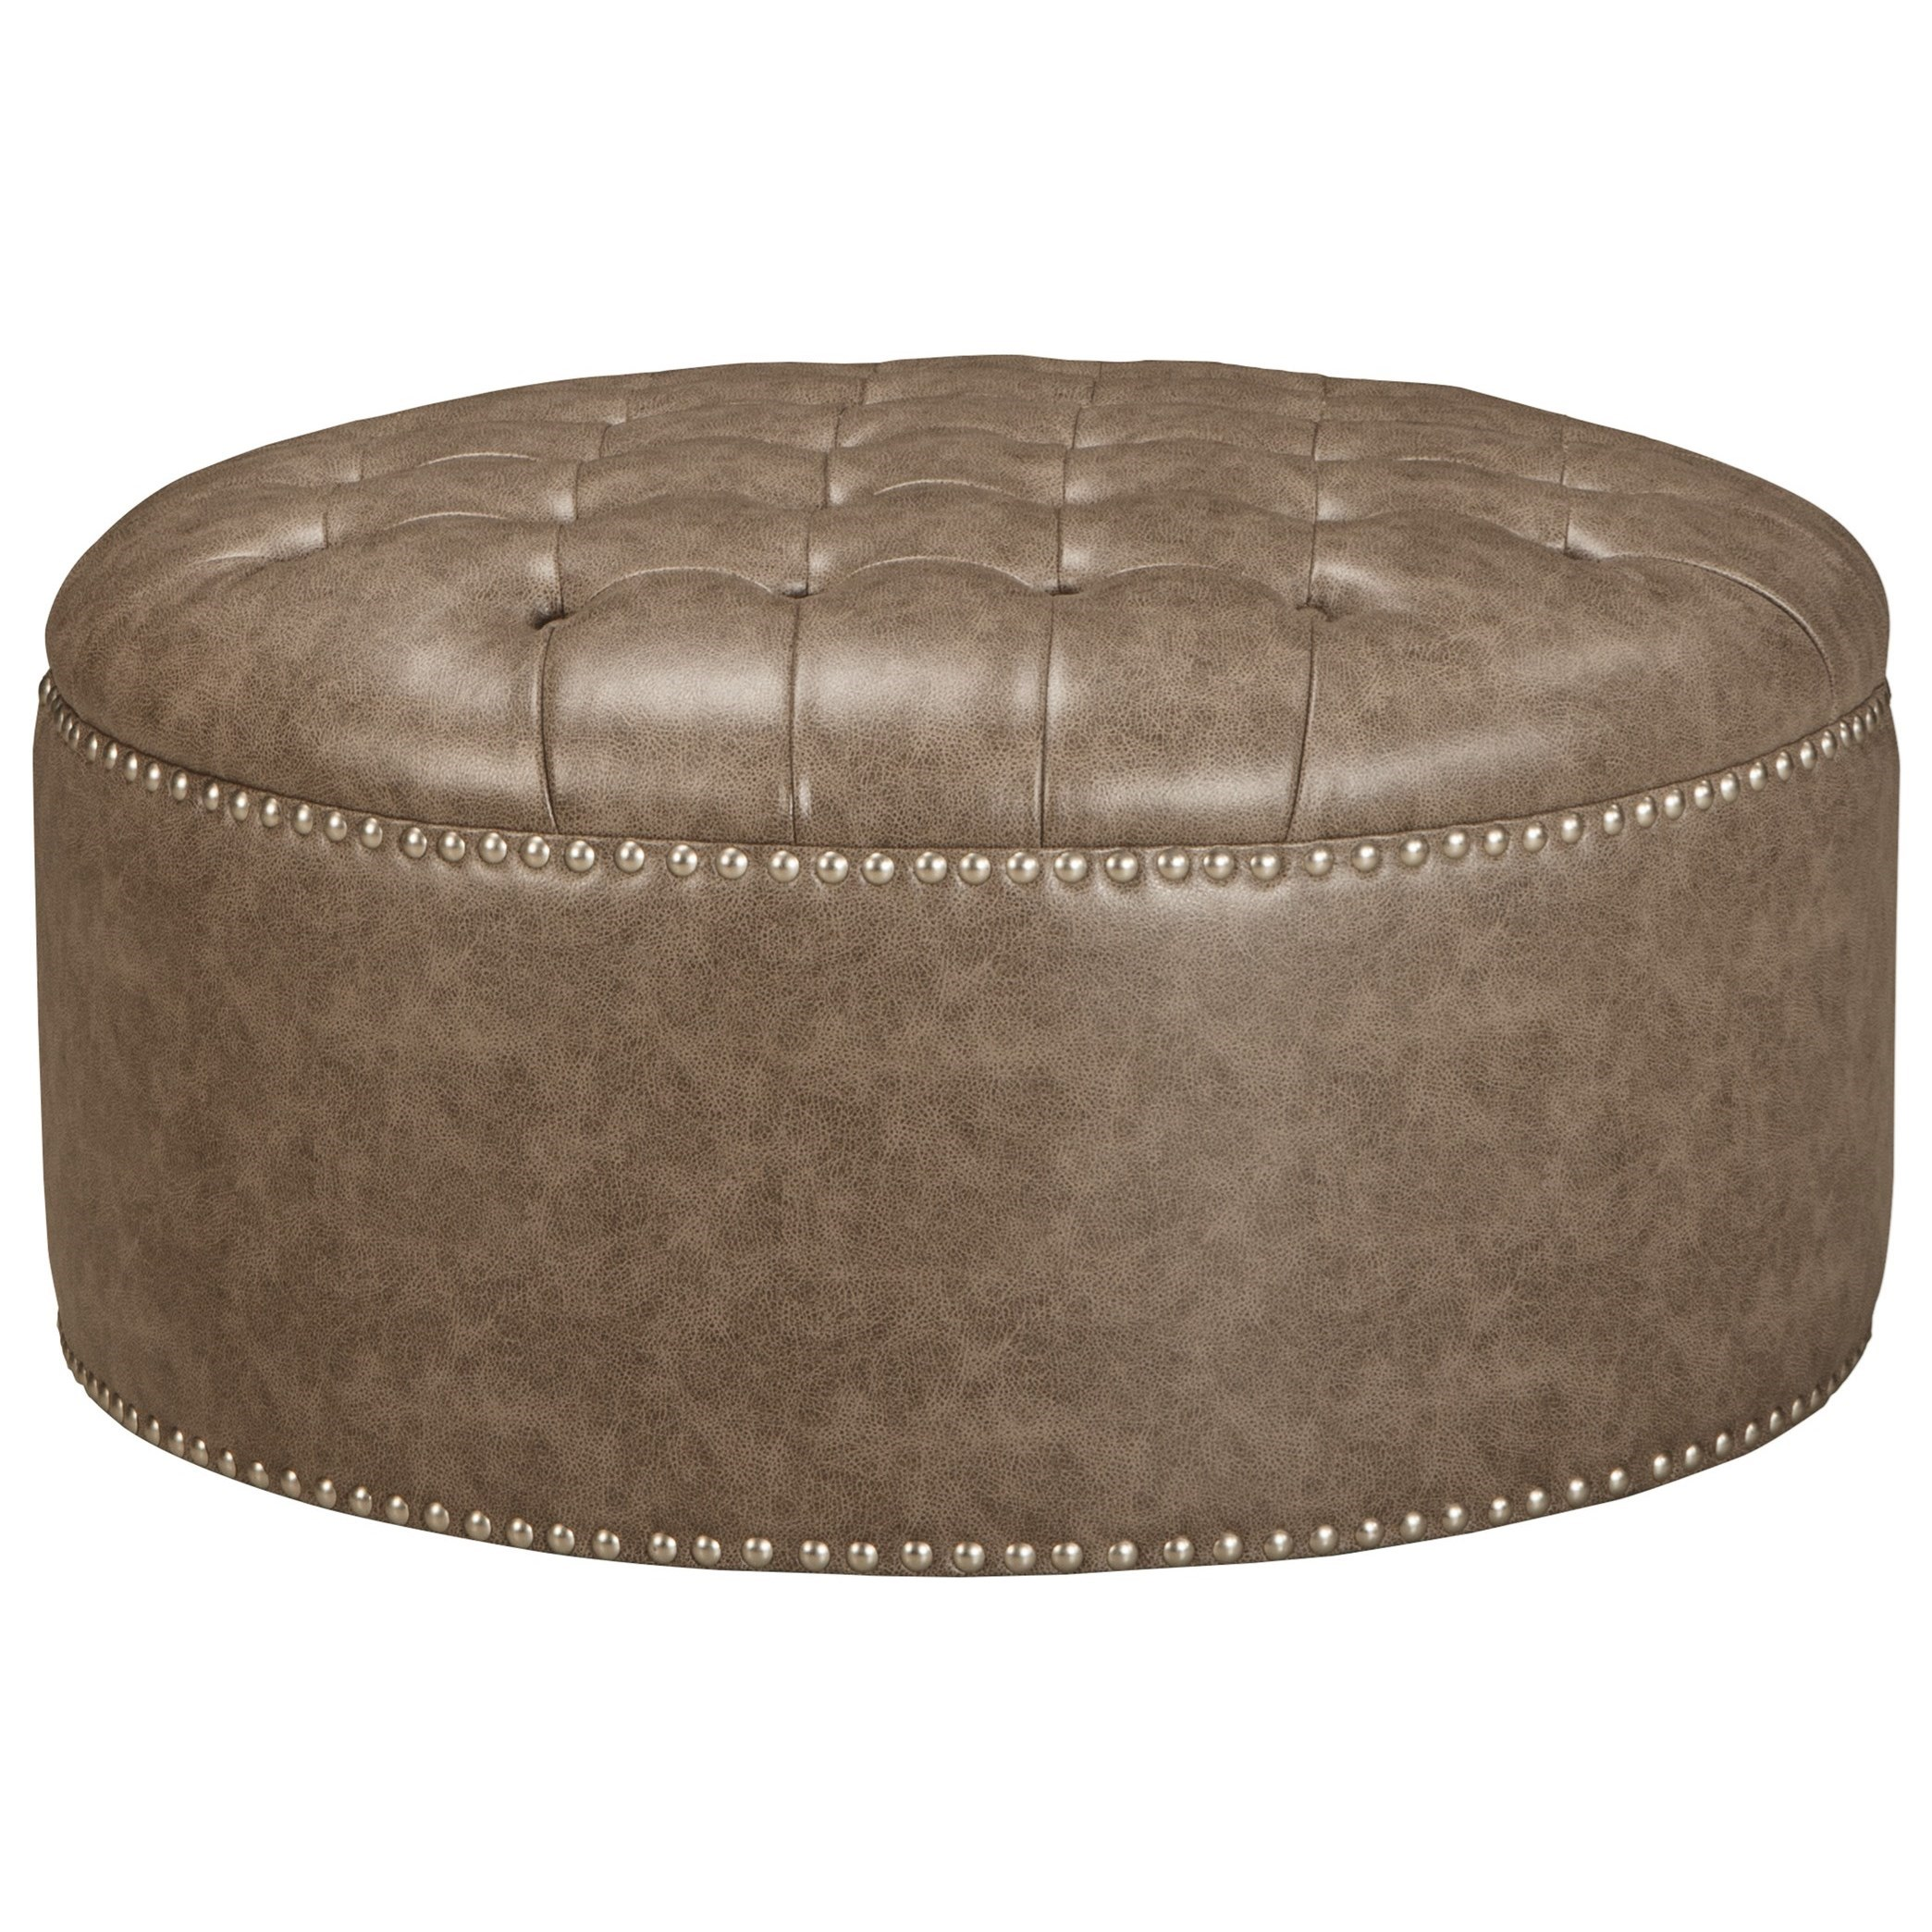 Millennium Wilcot Oversized Accent Ottoman - Item Number: 2870108